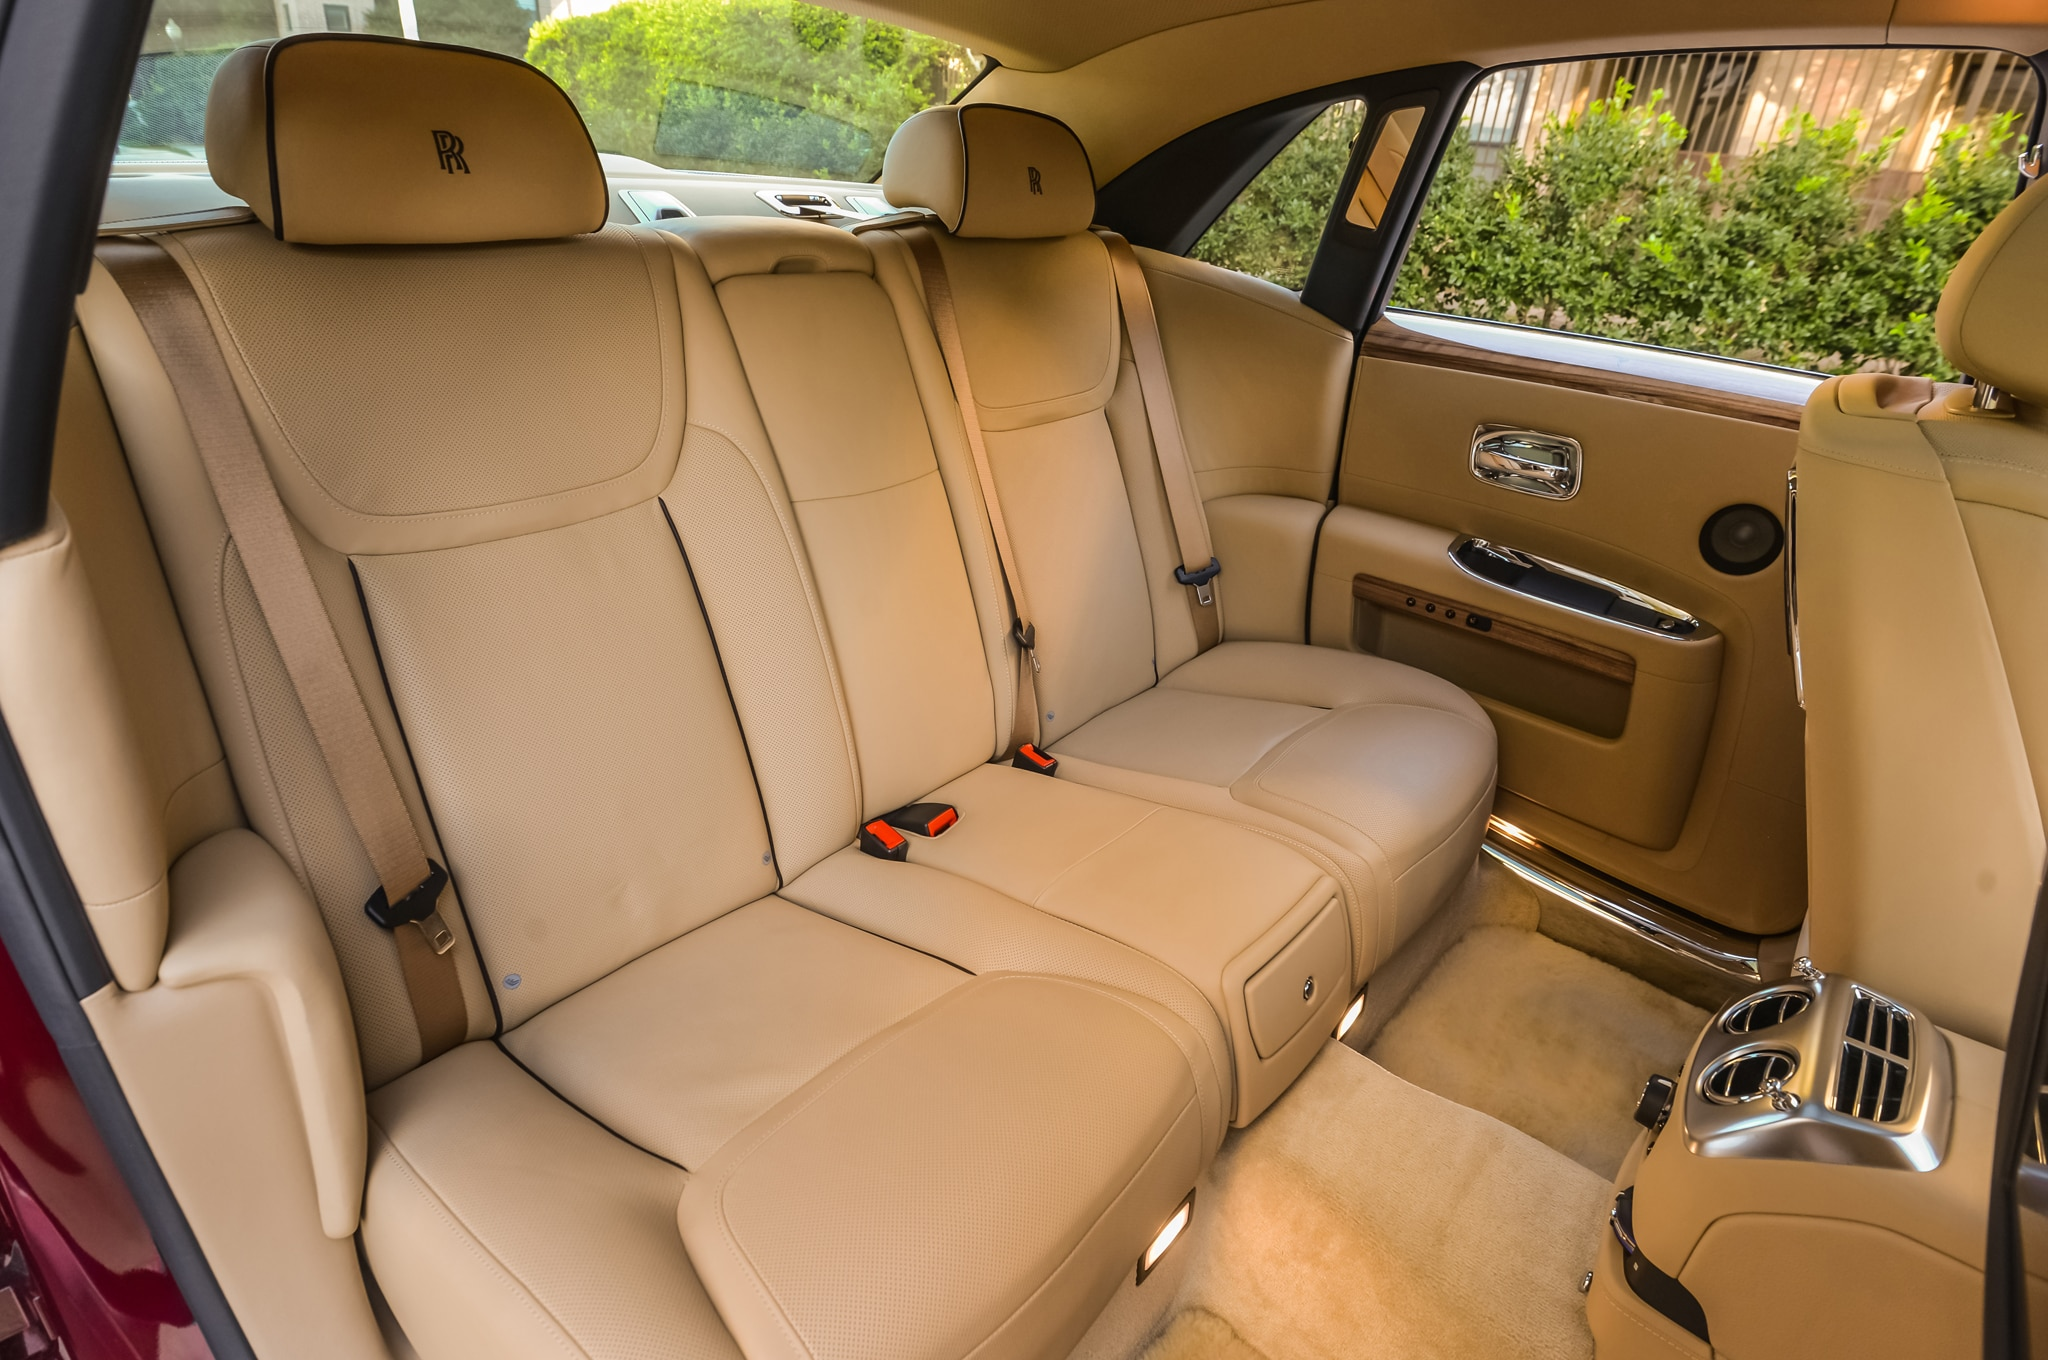 rolls royce phantom 2015 interior. chris nelson rolls royce phantom 2015 interior